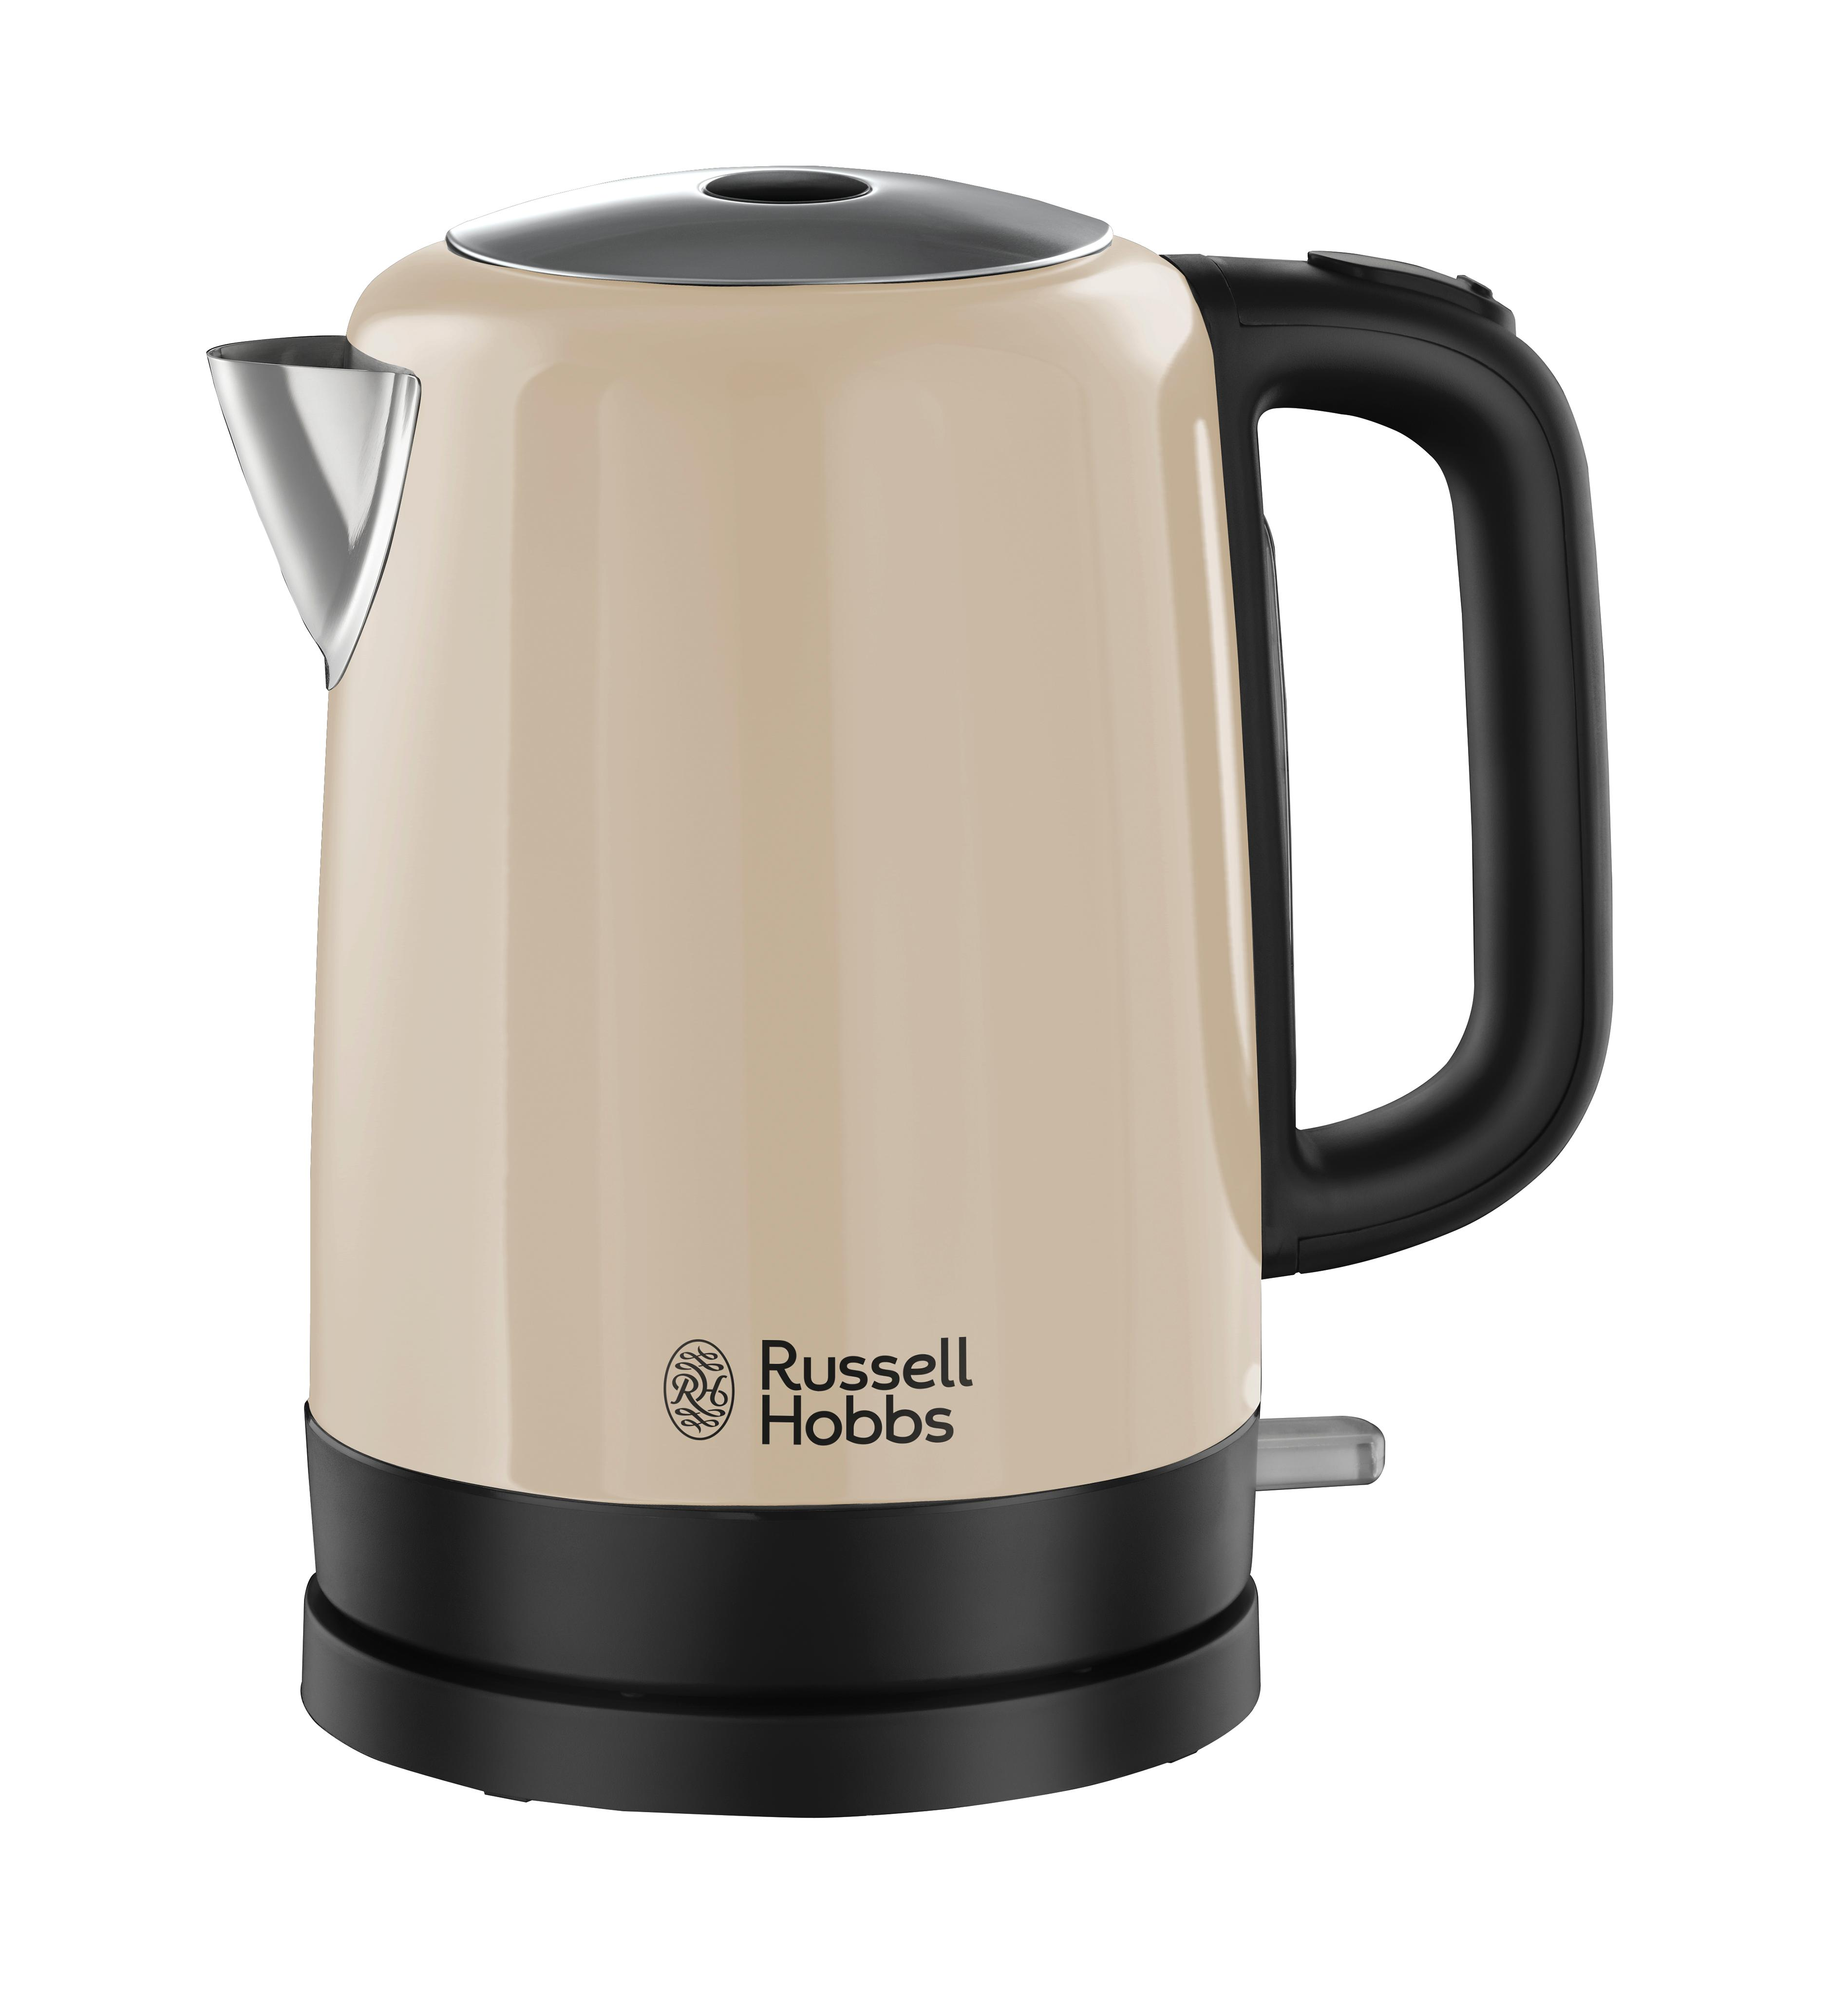 russell hobbs canterbury kettle 20614 1 7 l 3000 w. Black Bedroom Furniture Sets. Home Design Ideas